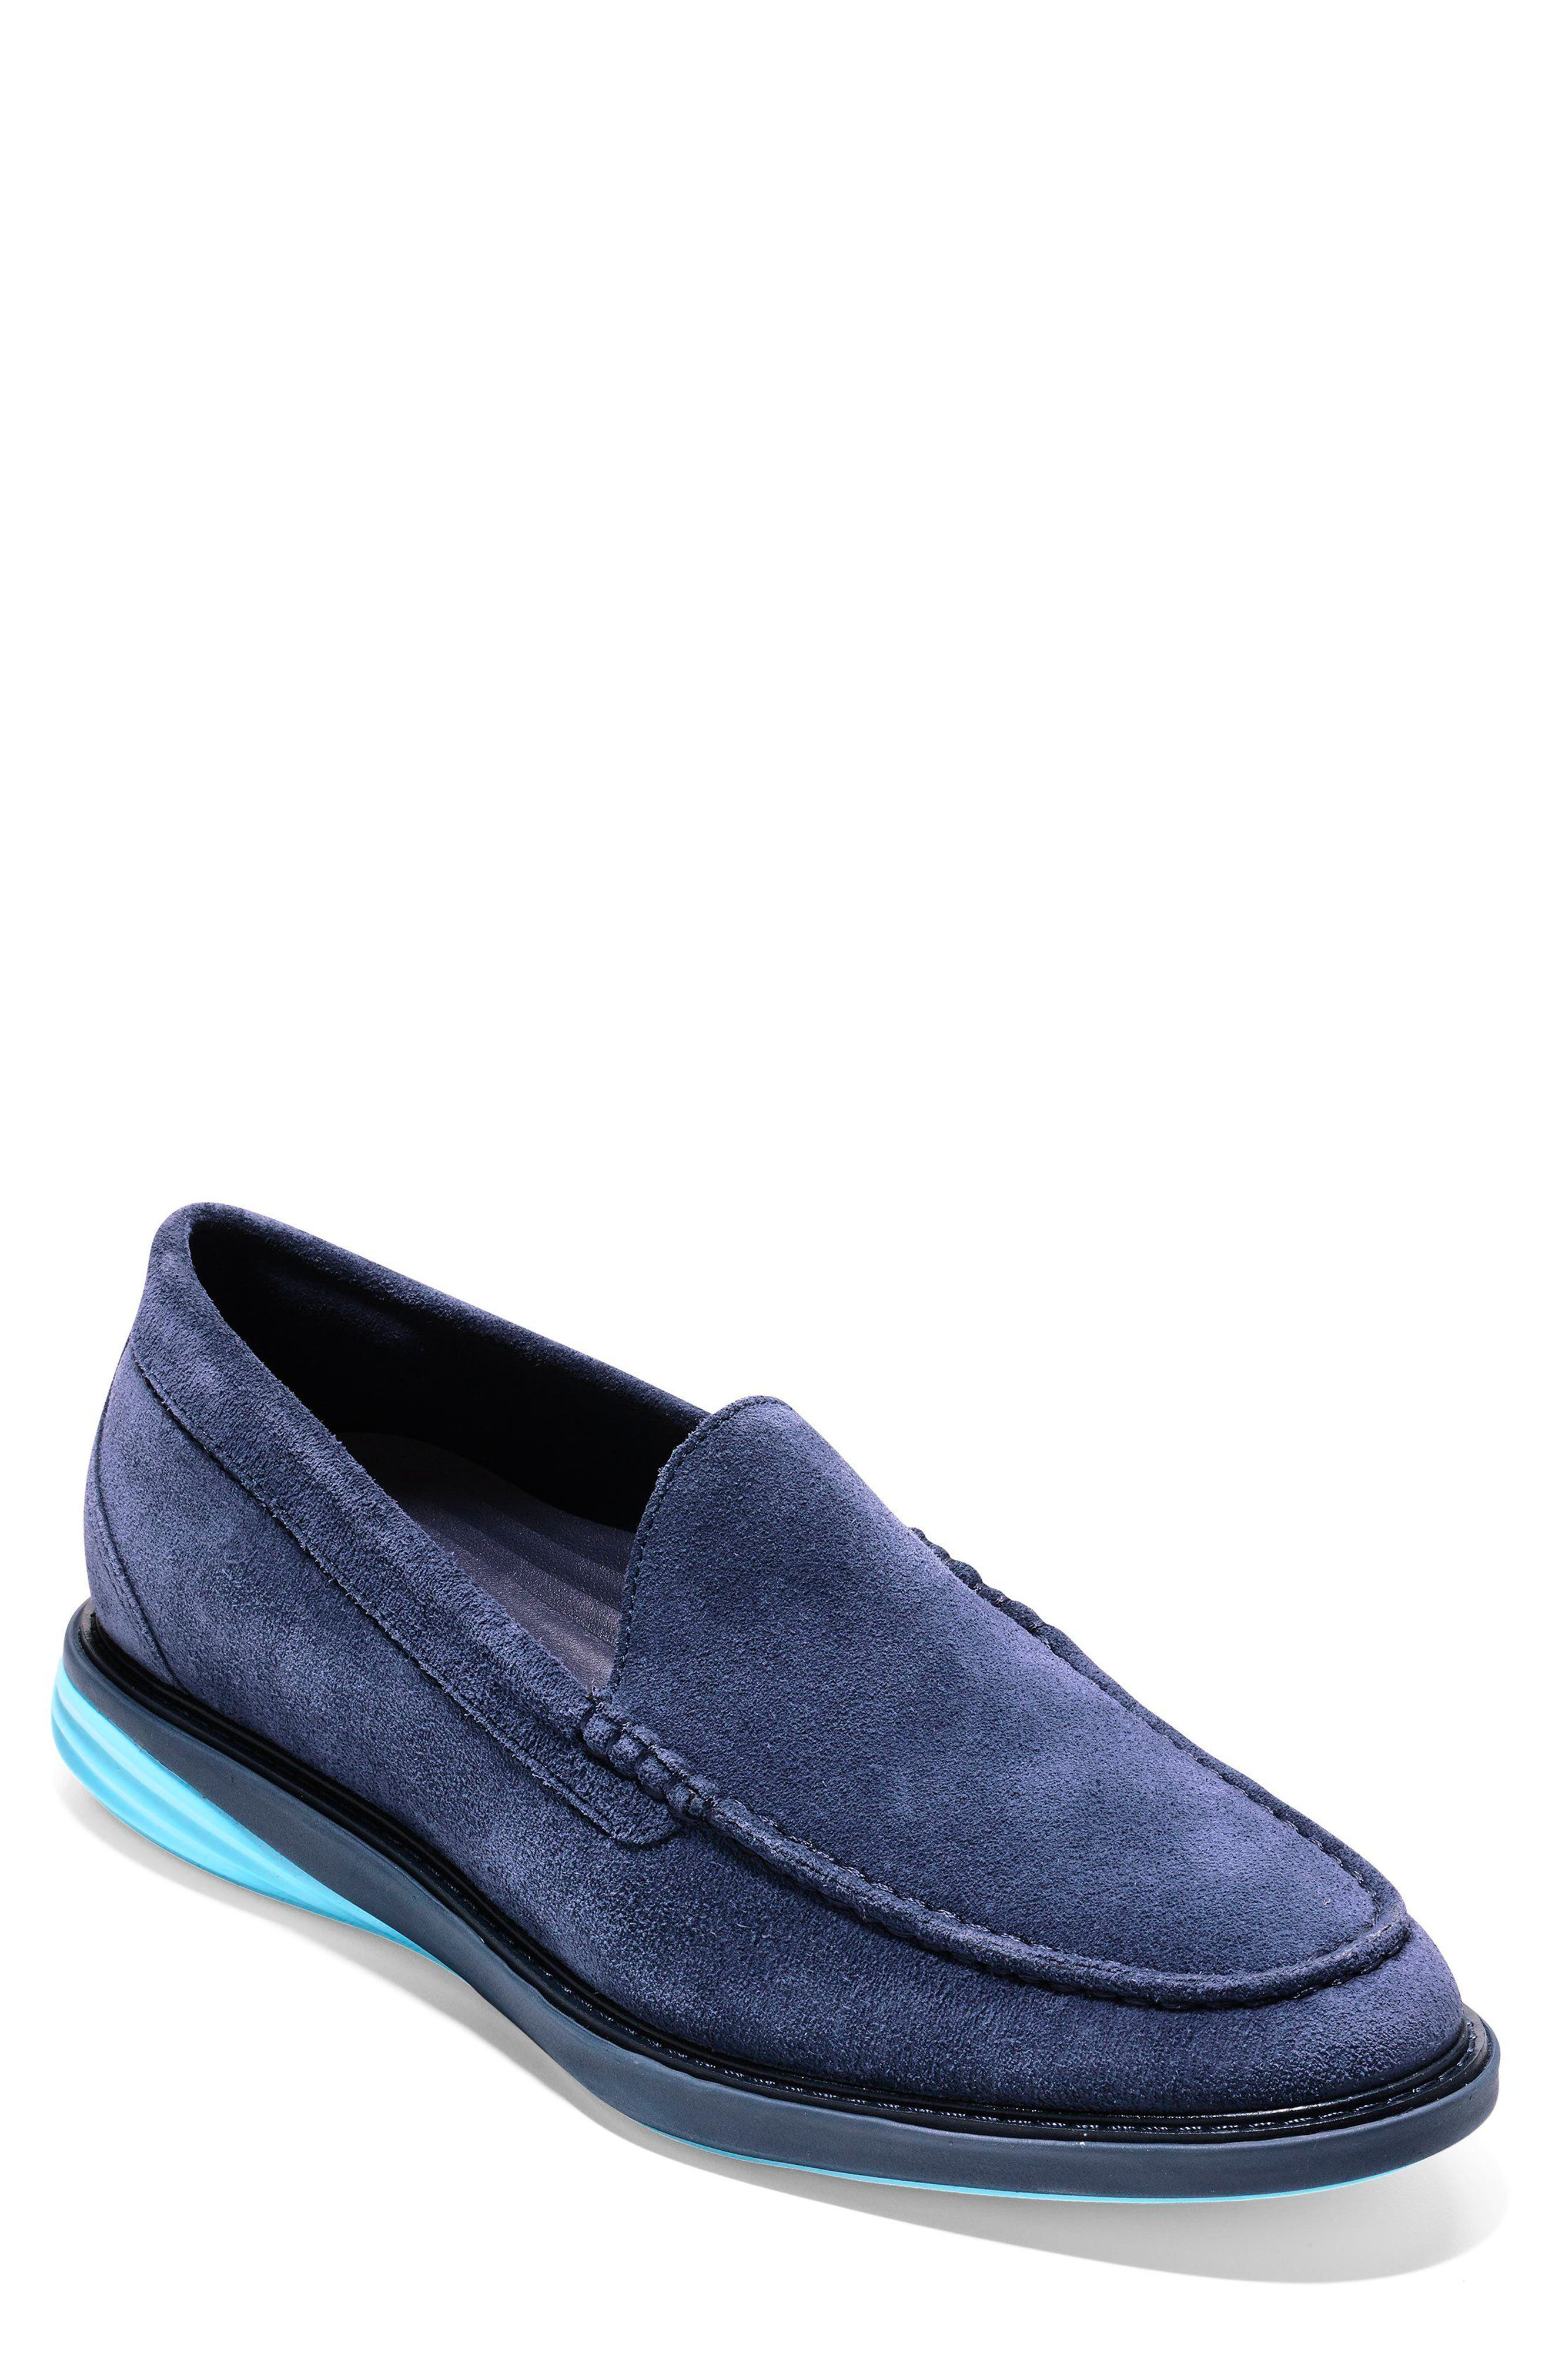 cole haan shoes blue swede discography wikipedia 715084